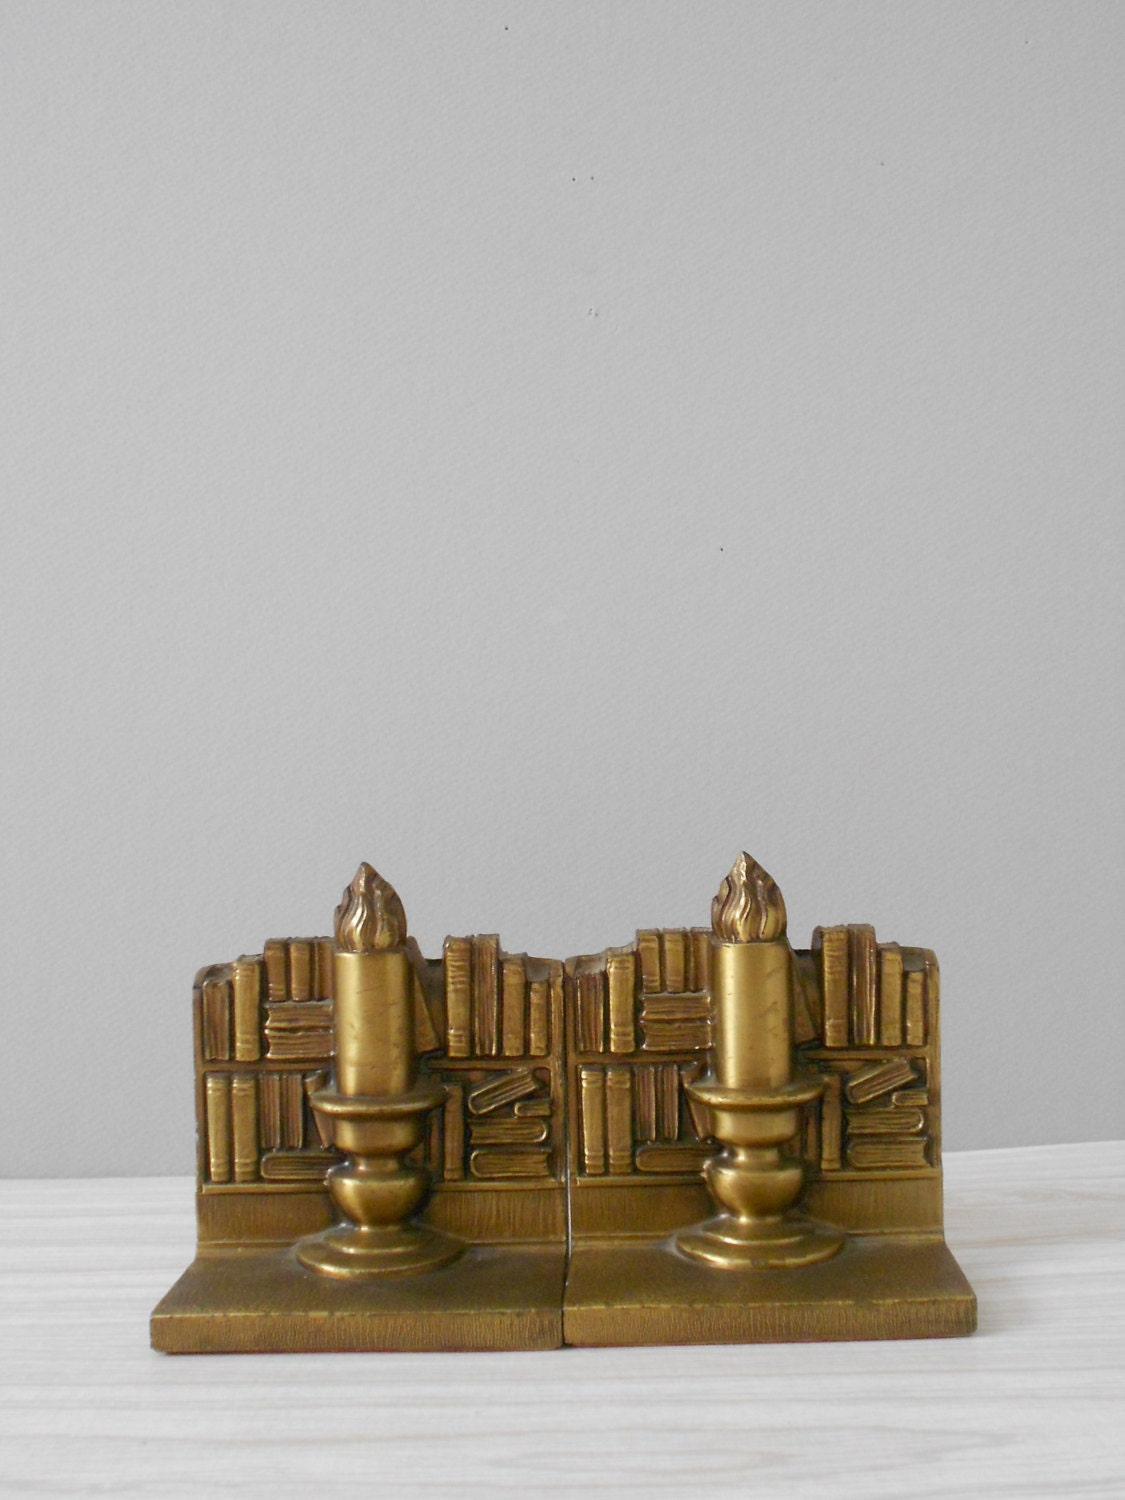 Sale Vintage Heavy Solid Cast Brass Candle Bookends 1950s Library Home Decor Housewares